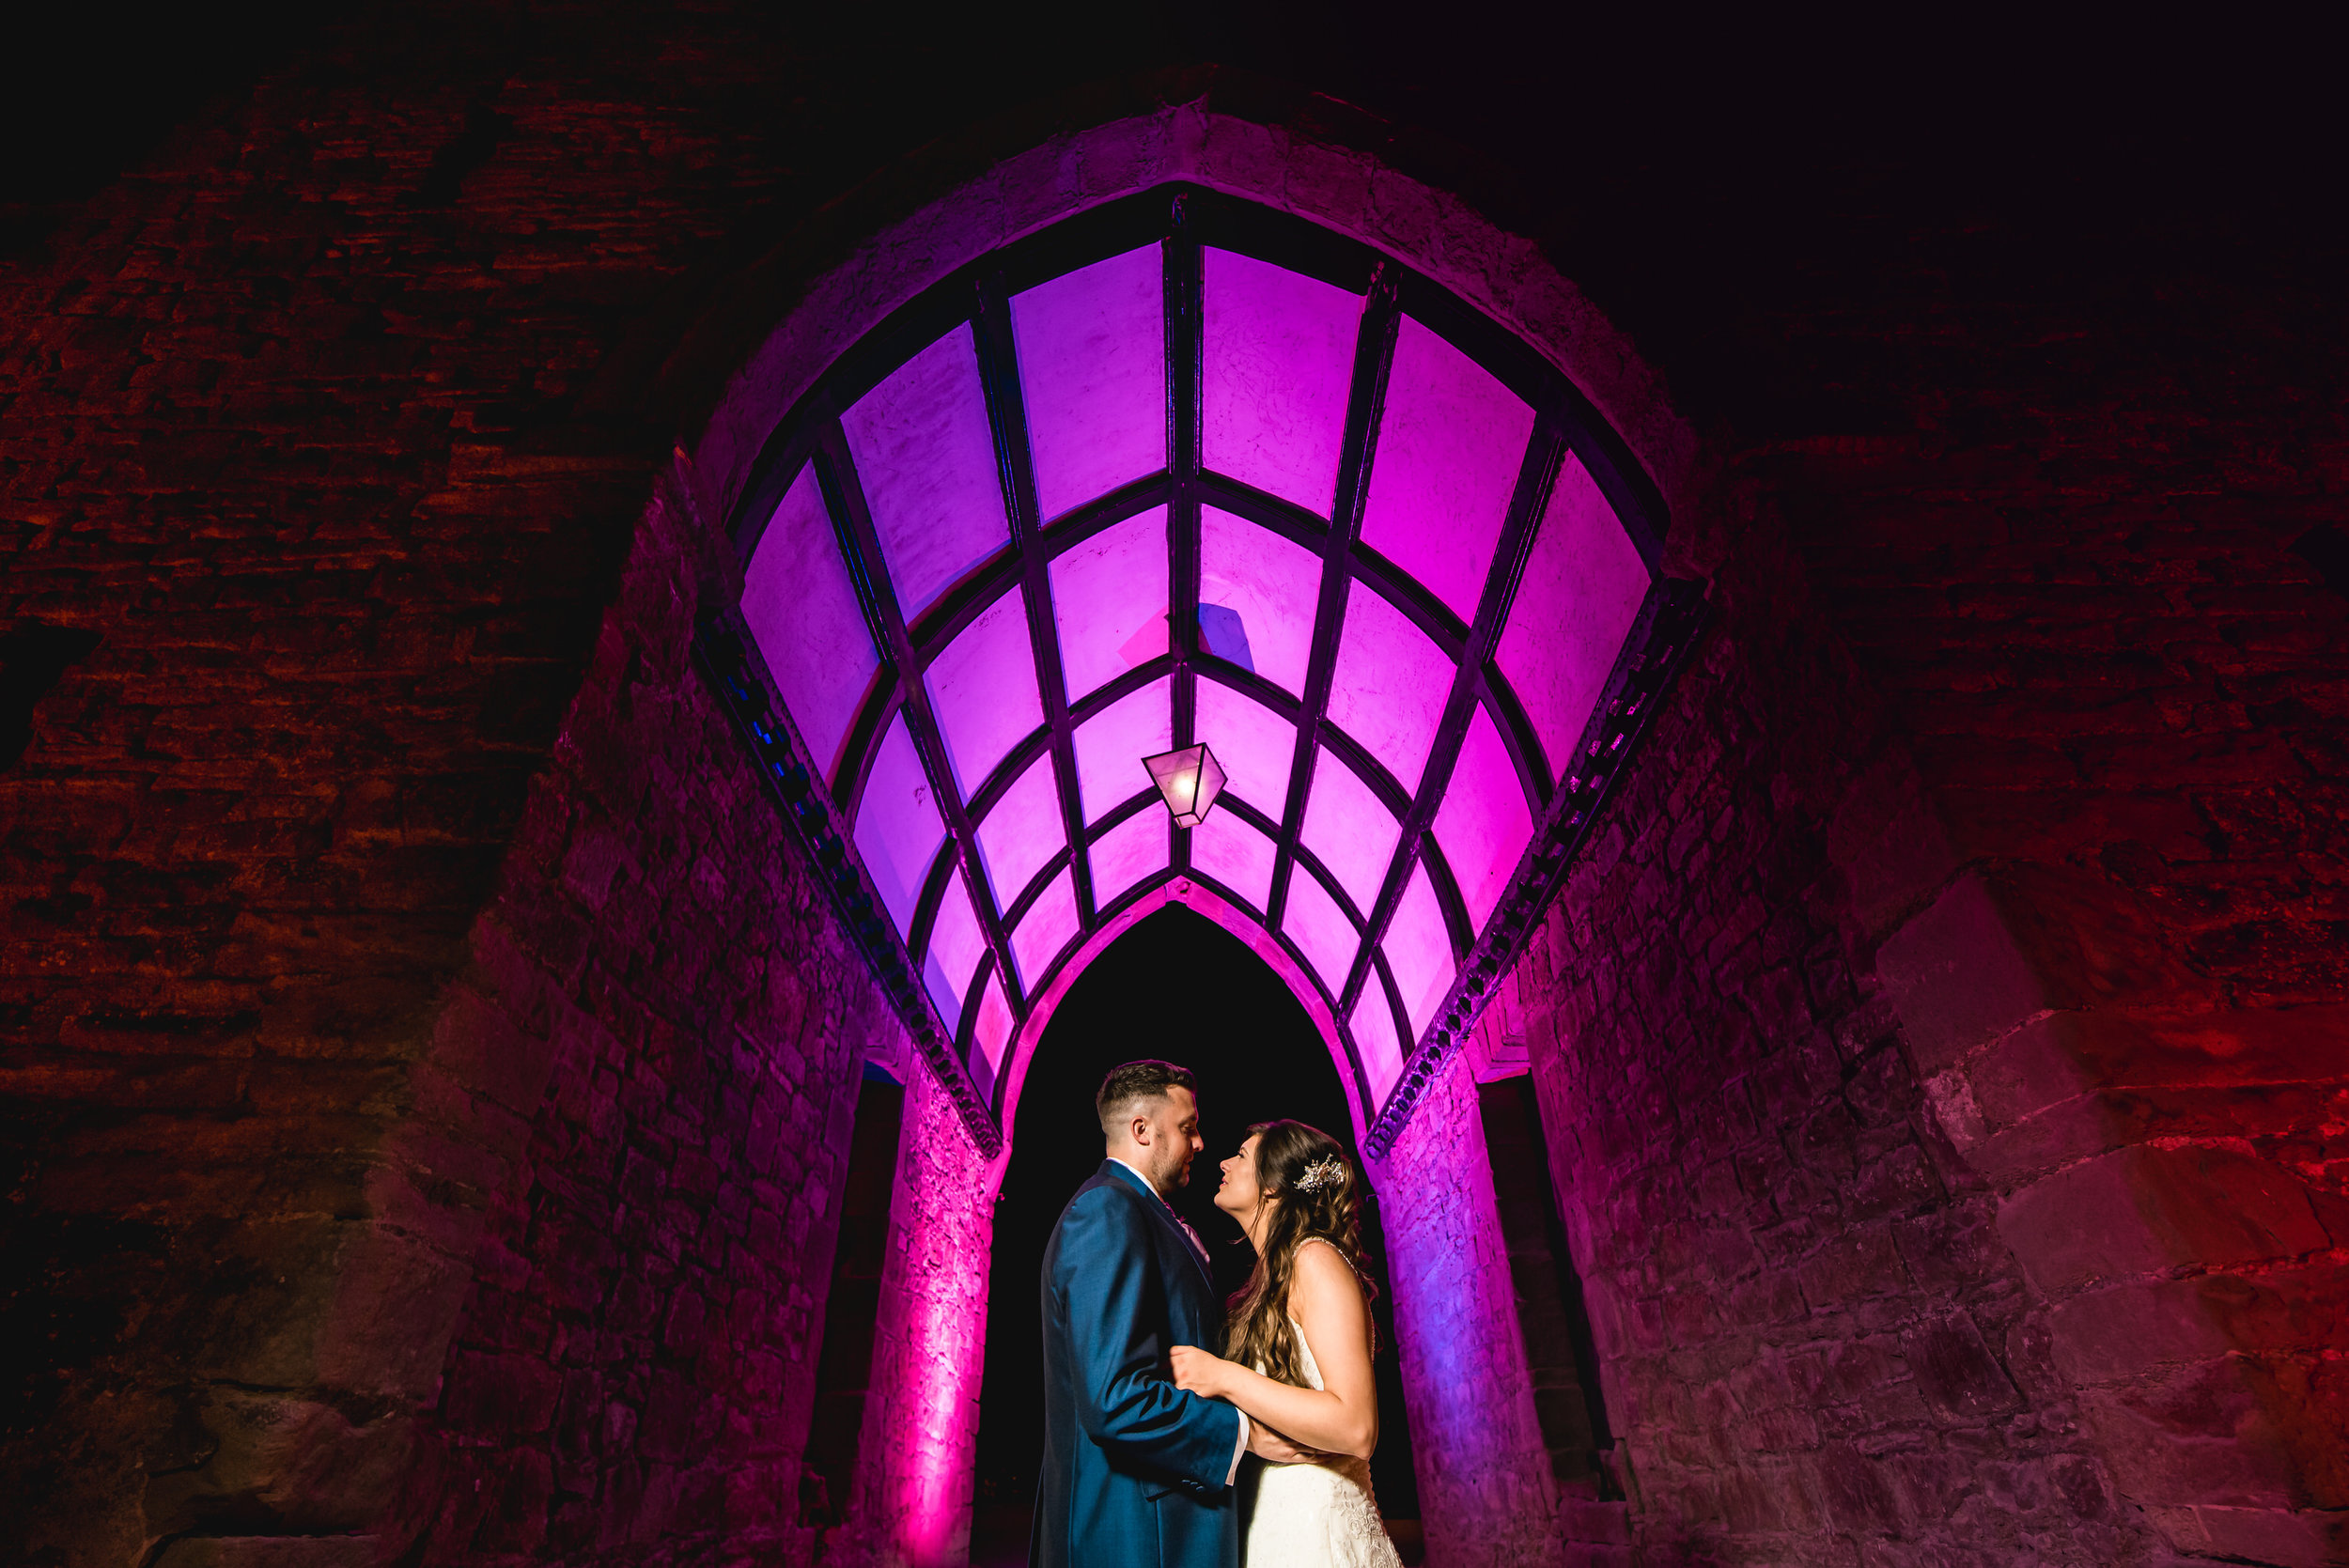 Clearwell-Castle-Gloucestershire-Wedding-Photography-44.jpg